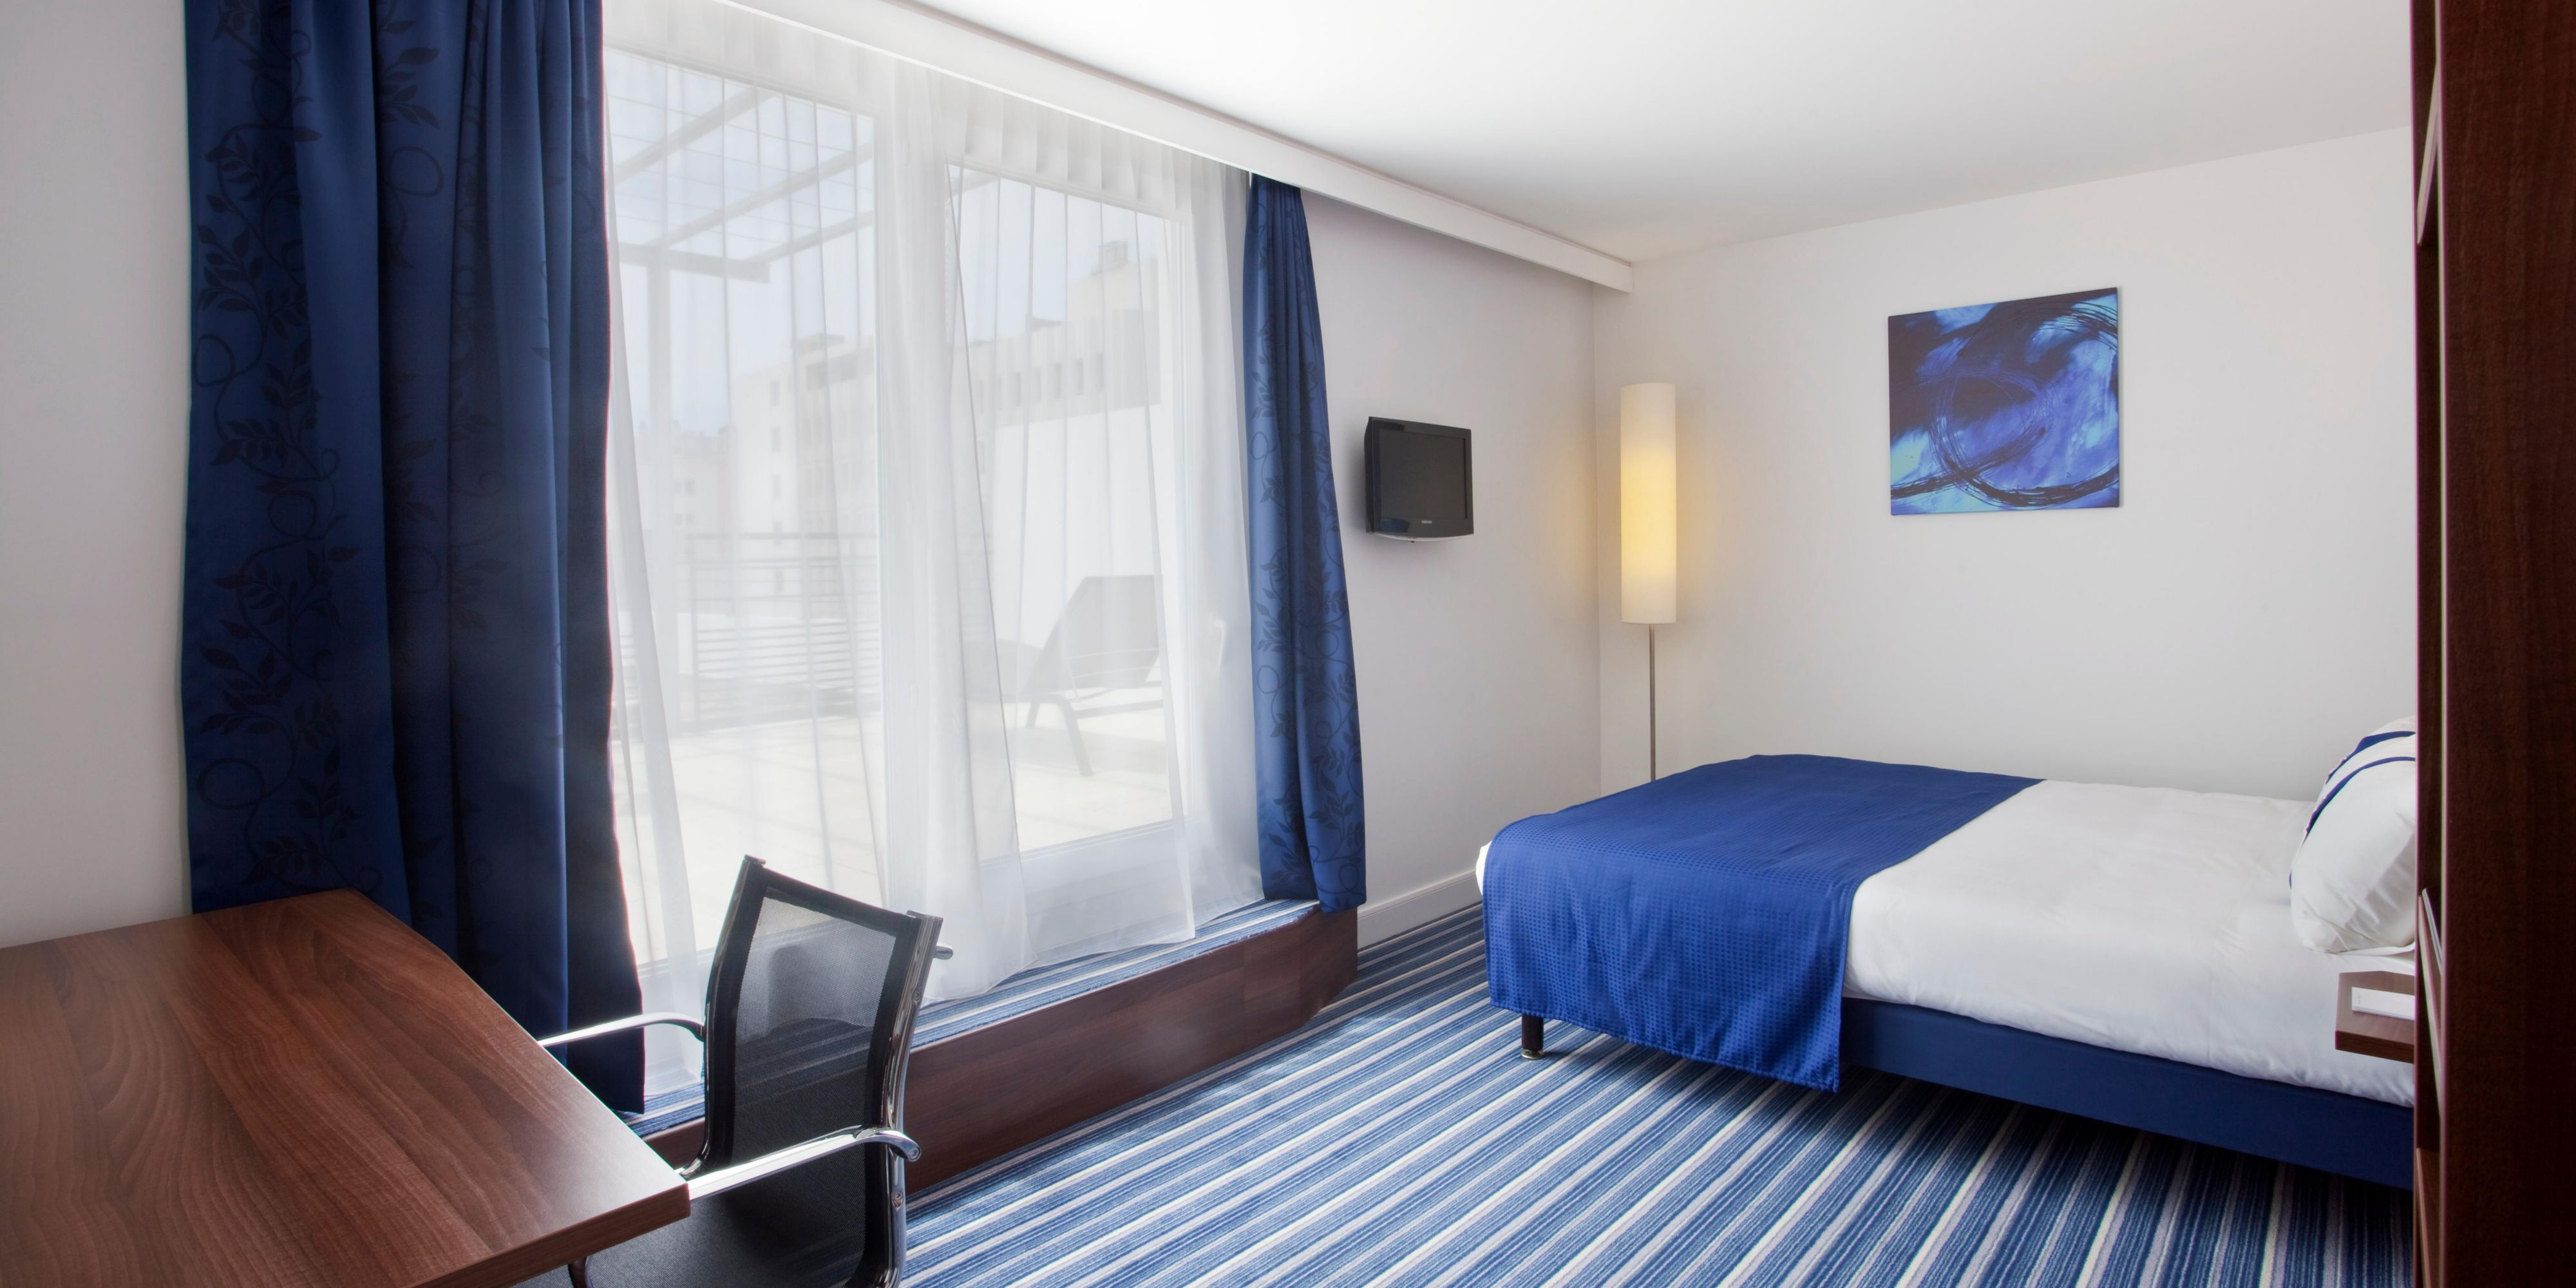 Holiday Inn Express Marseille Saint Charles Hotel By IHG - Hotel marseille vieux port pas cher